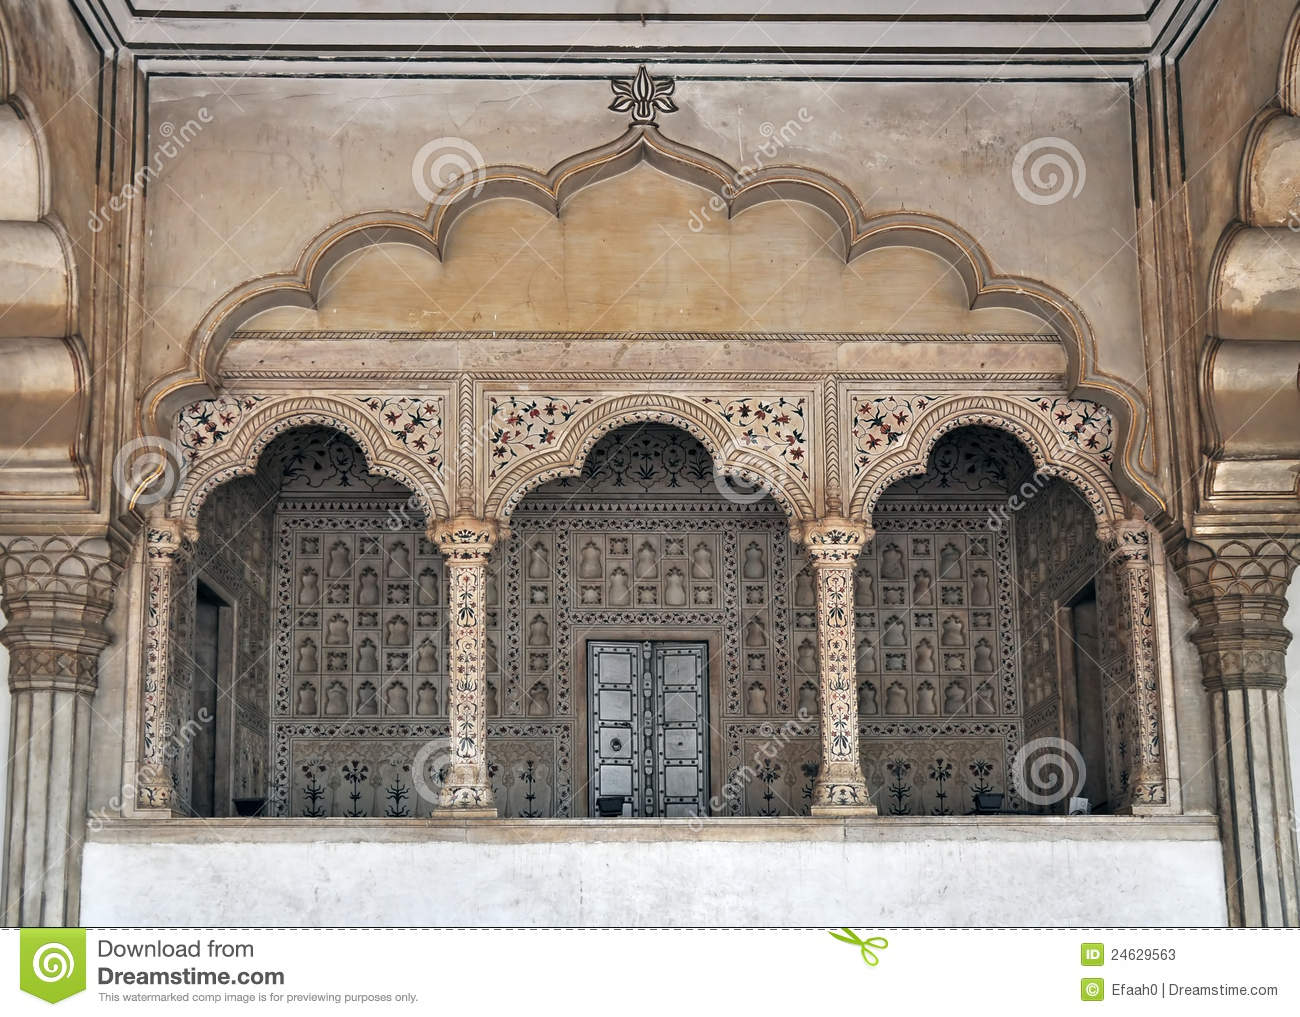 Agra Fort - Balcony for Emperor and Peacock Throne